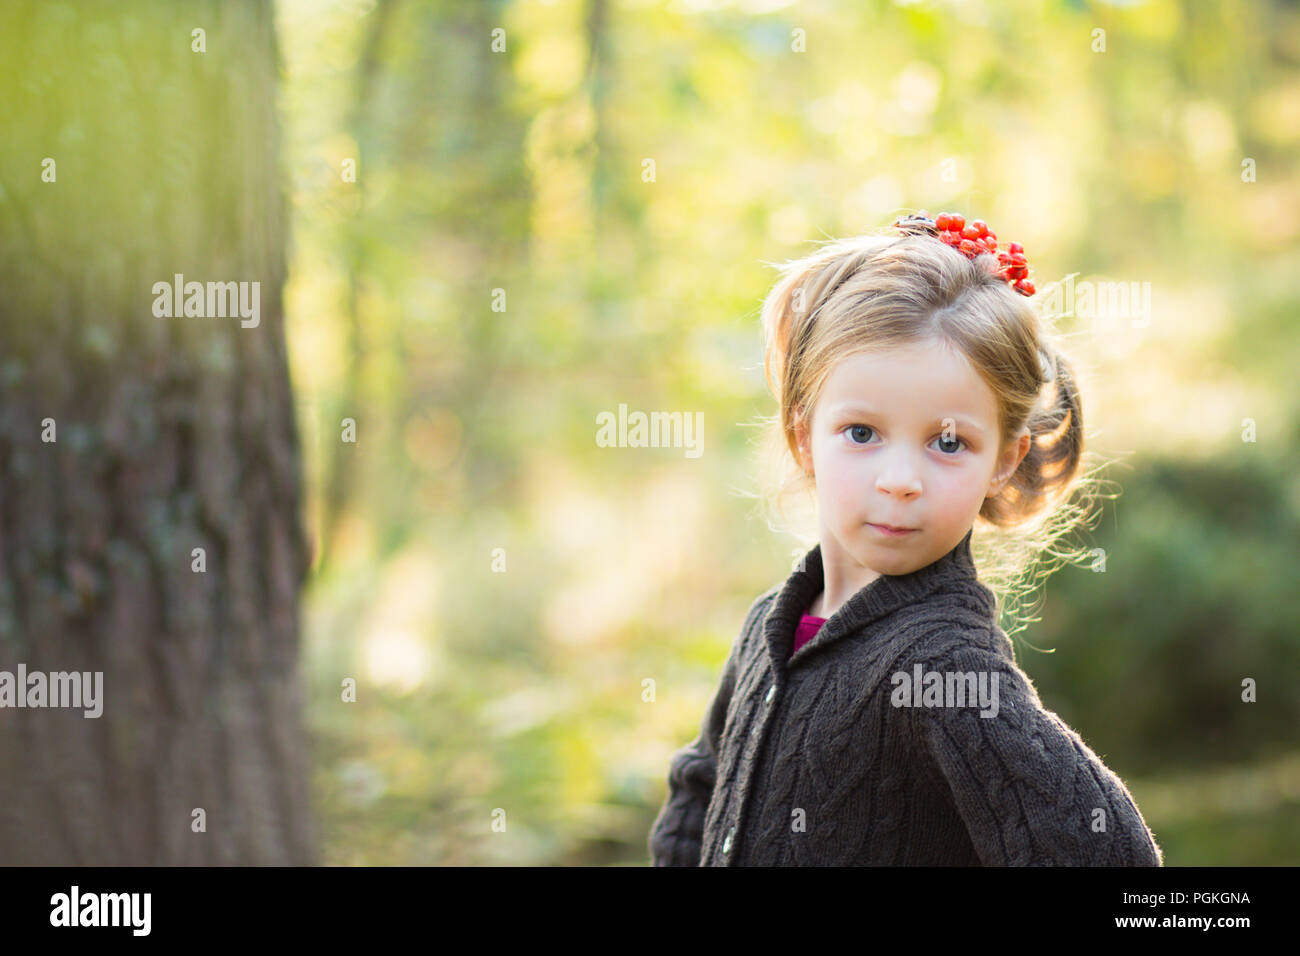 cute girl in nature with beautiful hairstyle with rowan berries.Dreamy young blonde girl hold in hands Rowan berries and look out. Autumn park.happy autumn.Copy space Stock Photo